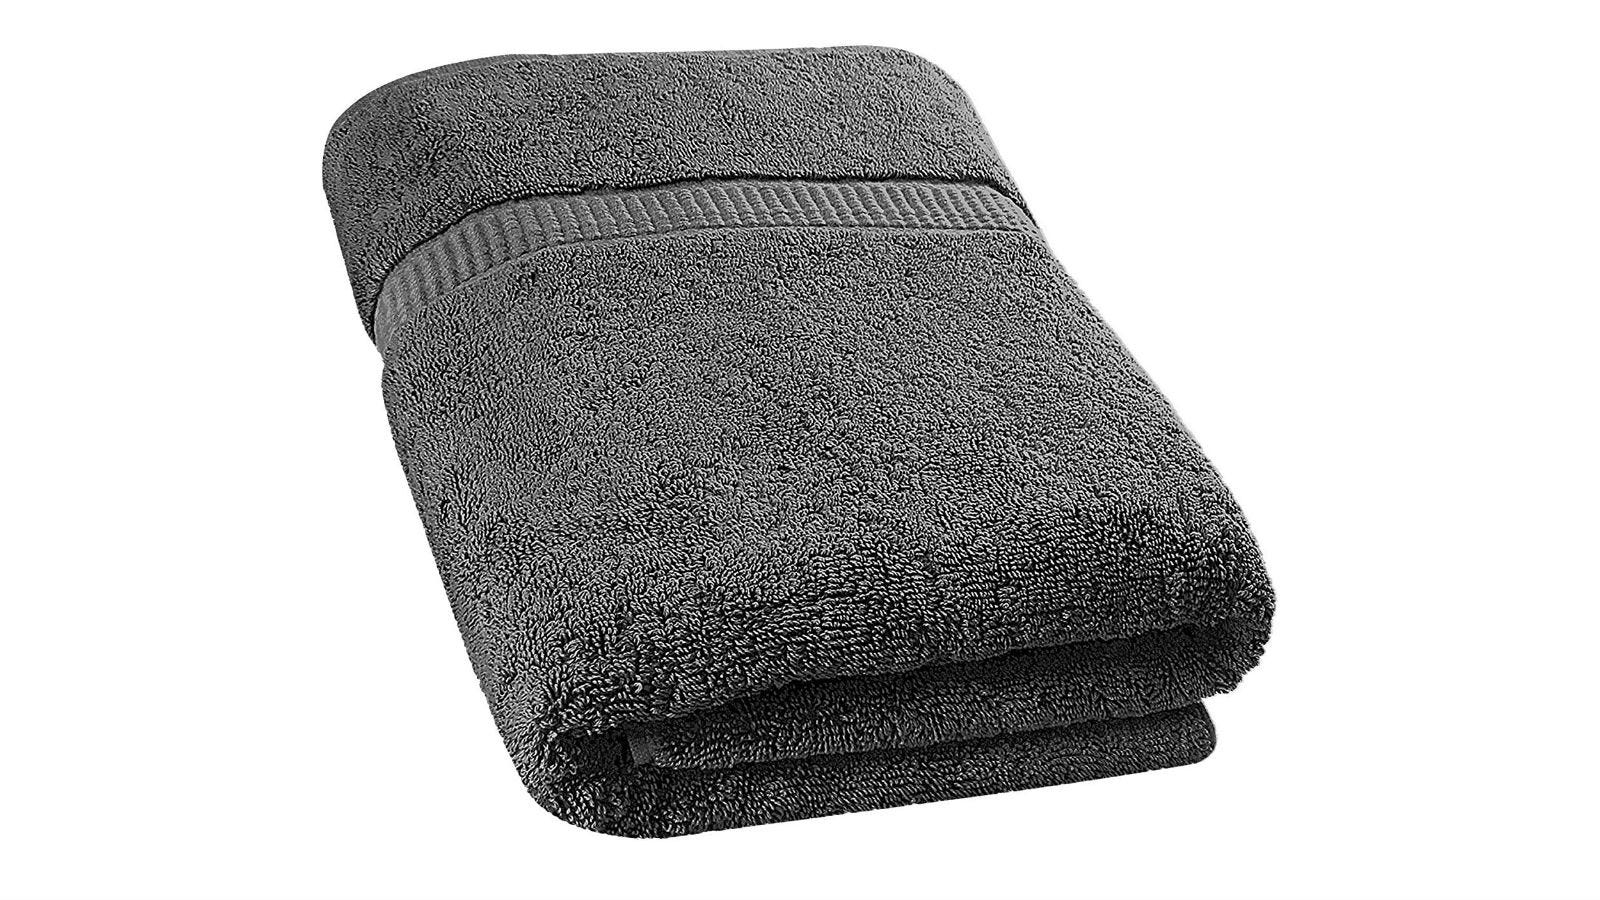 Utopia Towels Extra Large Bath Towels